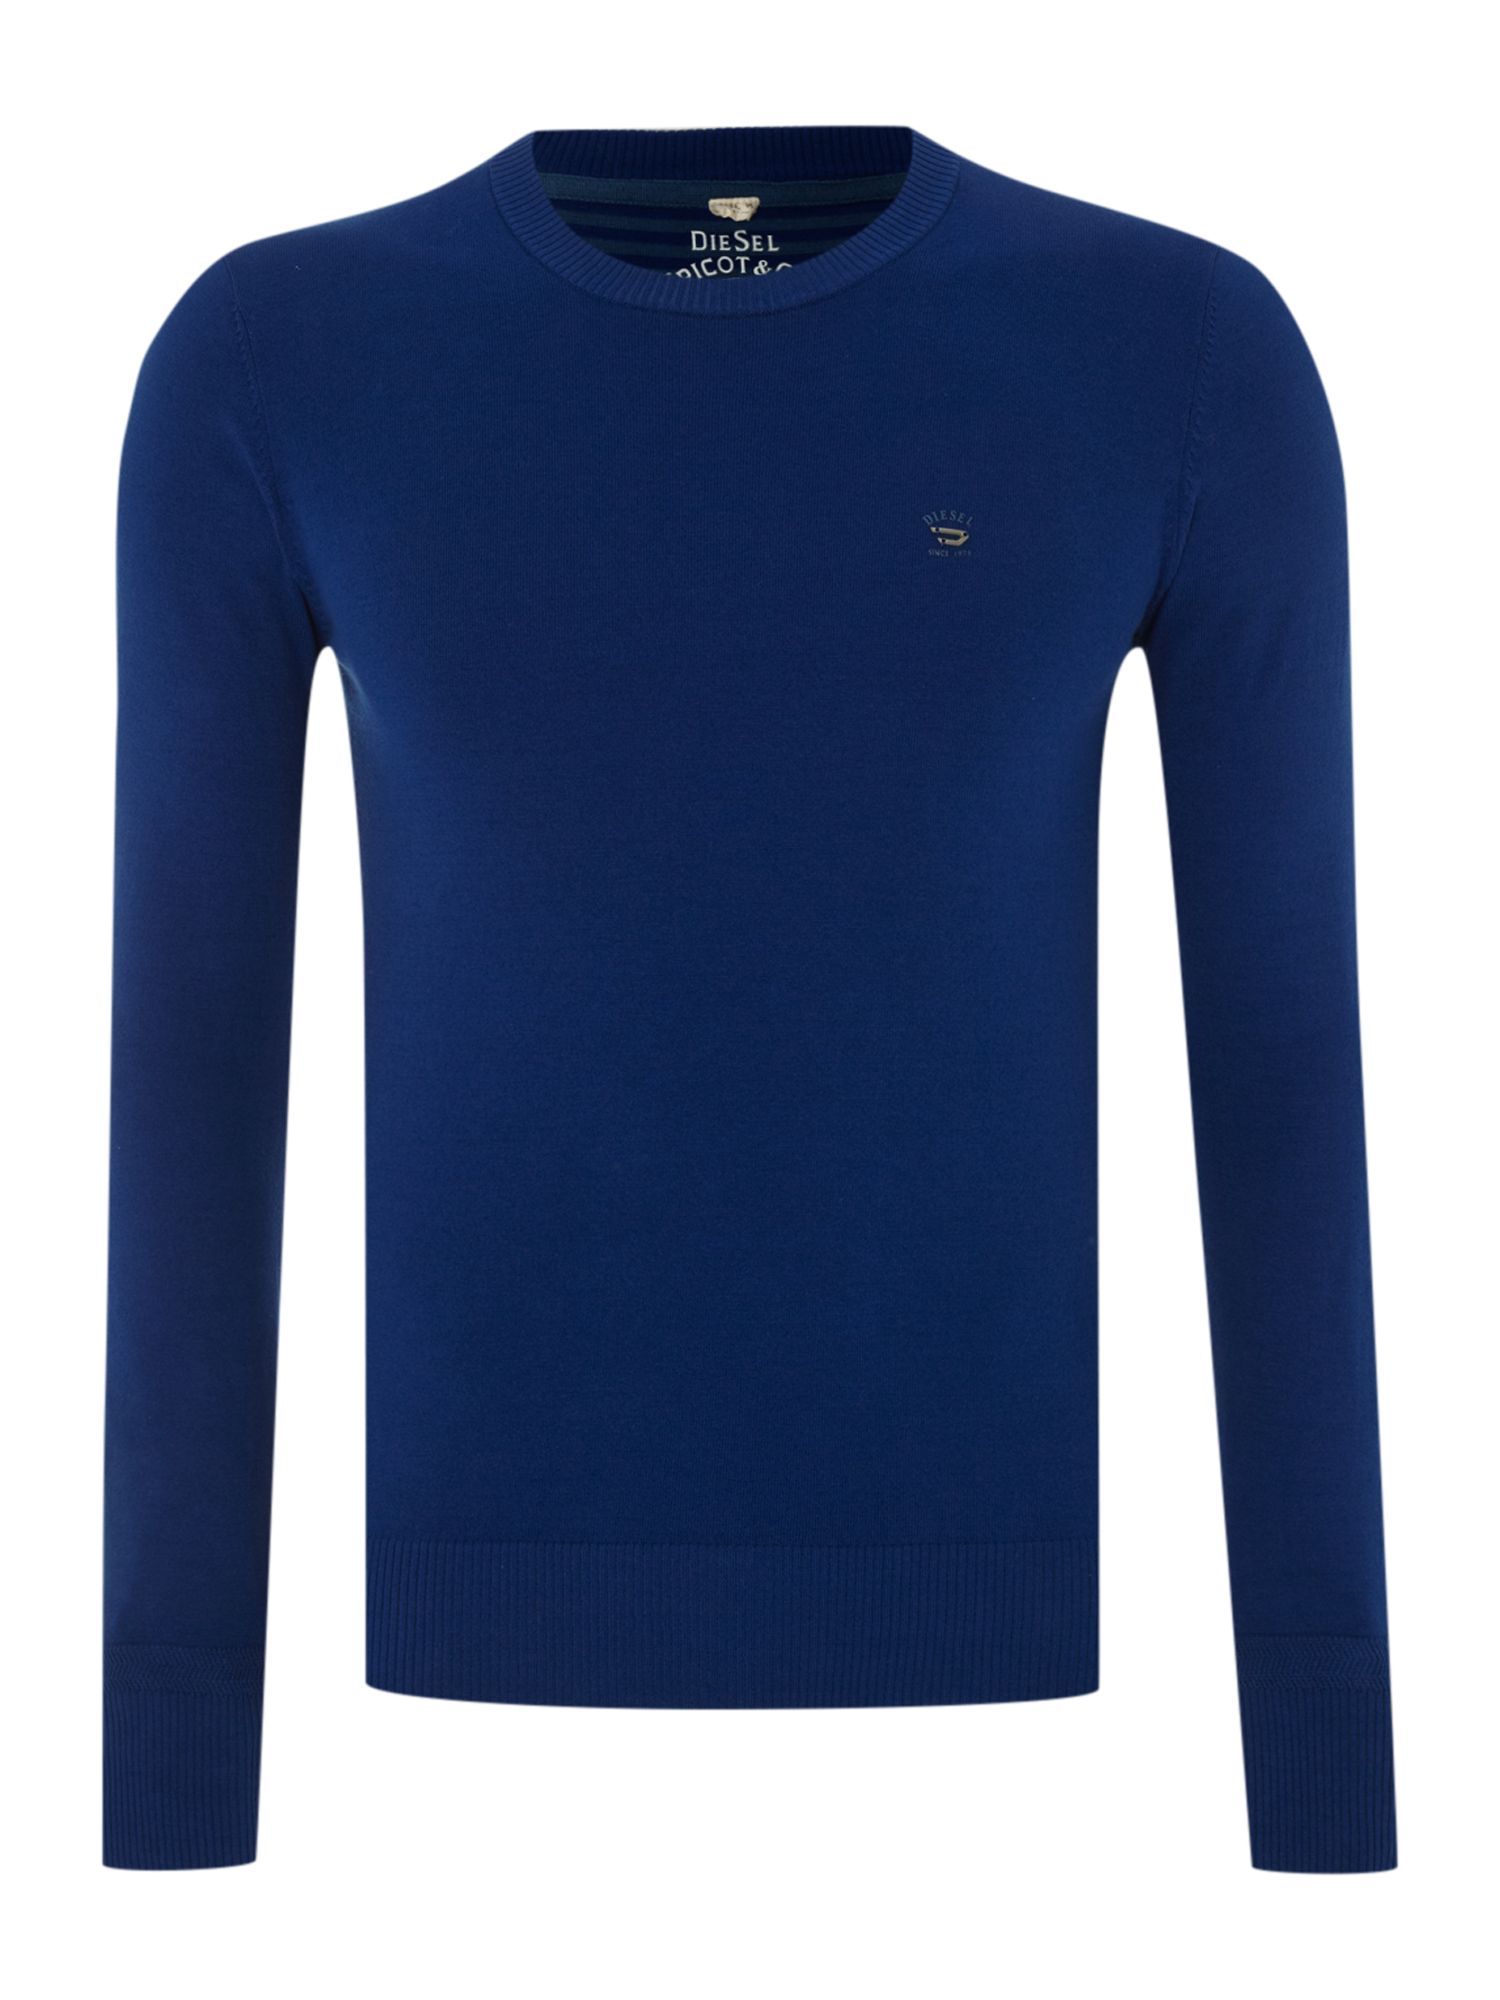 Crew neck fine knit jumper with logo